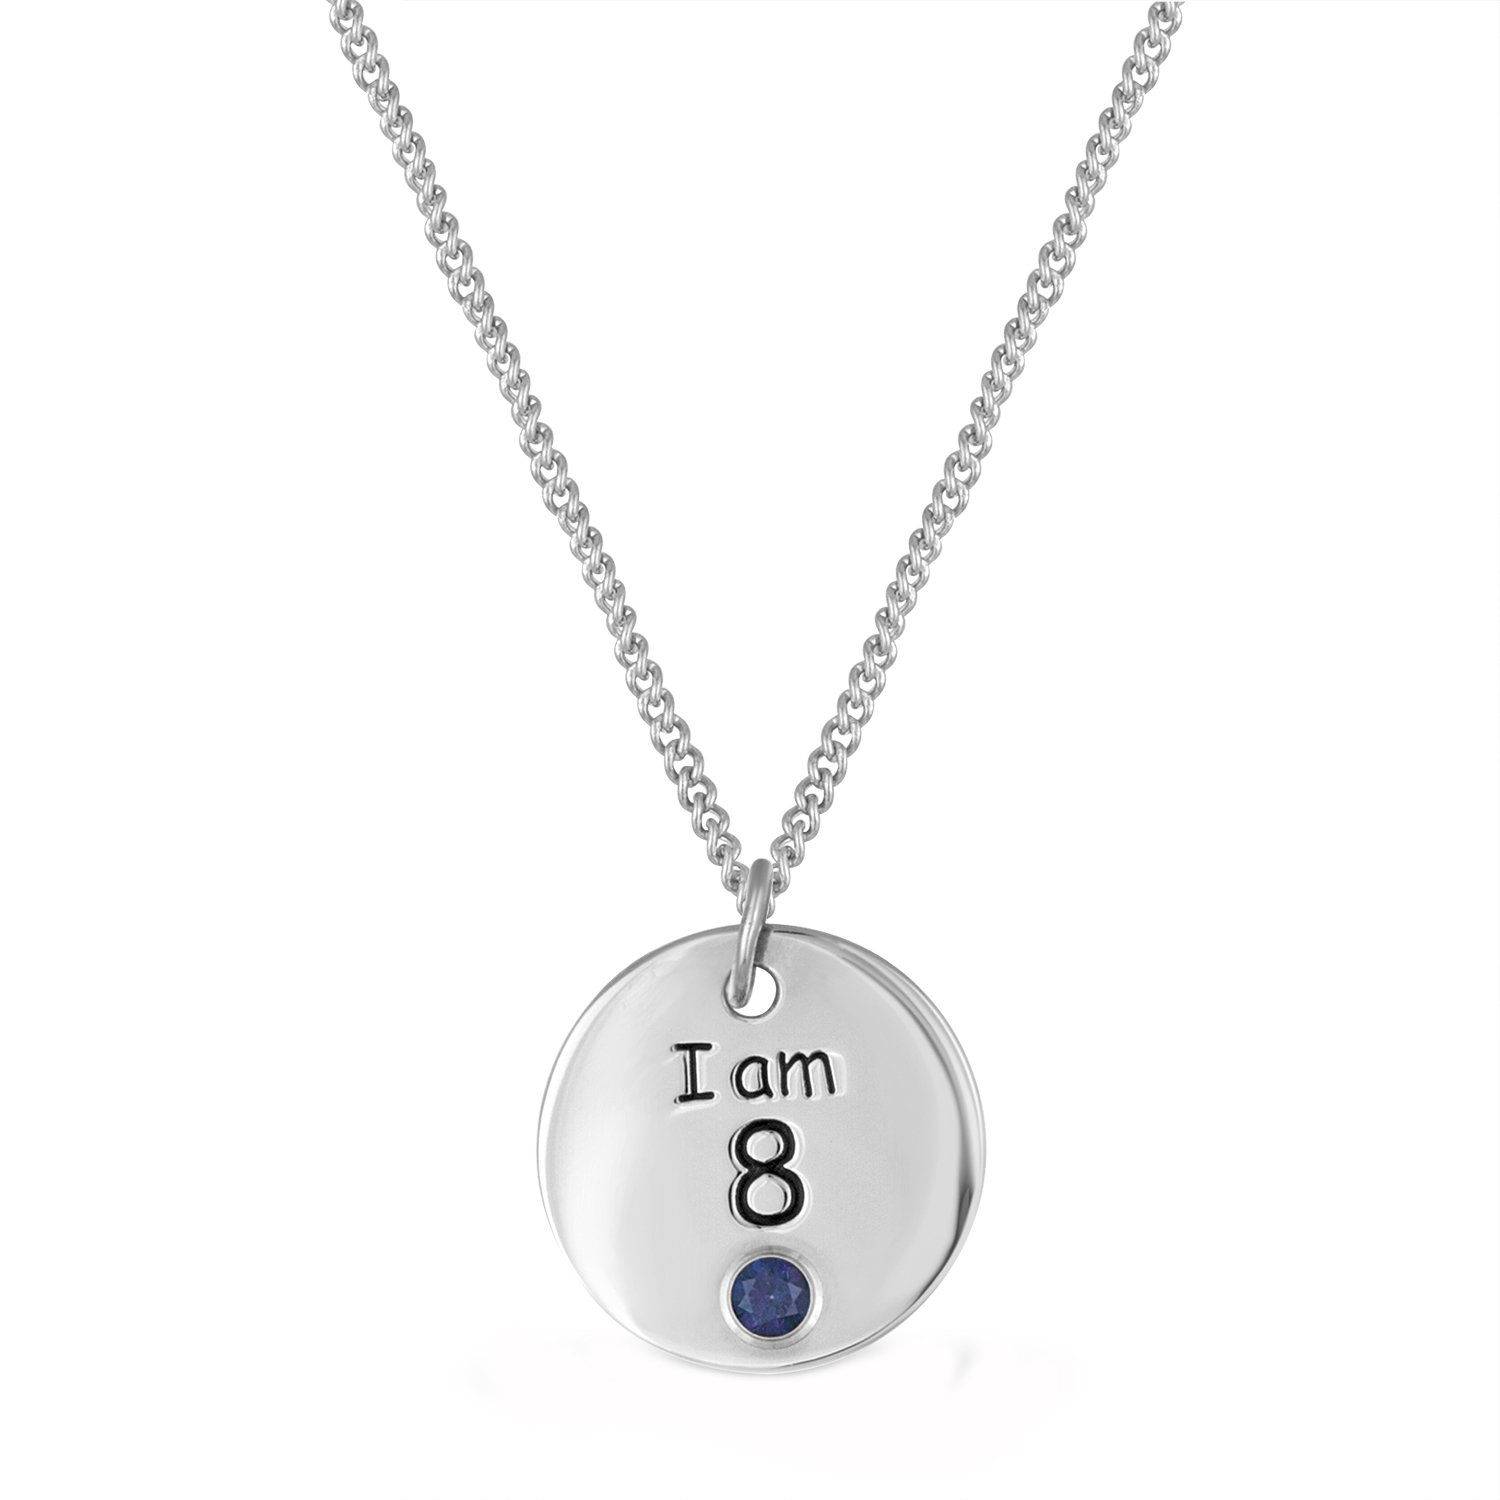 64a9695e53c3b Esty & Me Sterling Silver Necklace with Swarovski Simulated ...